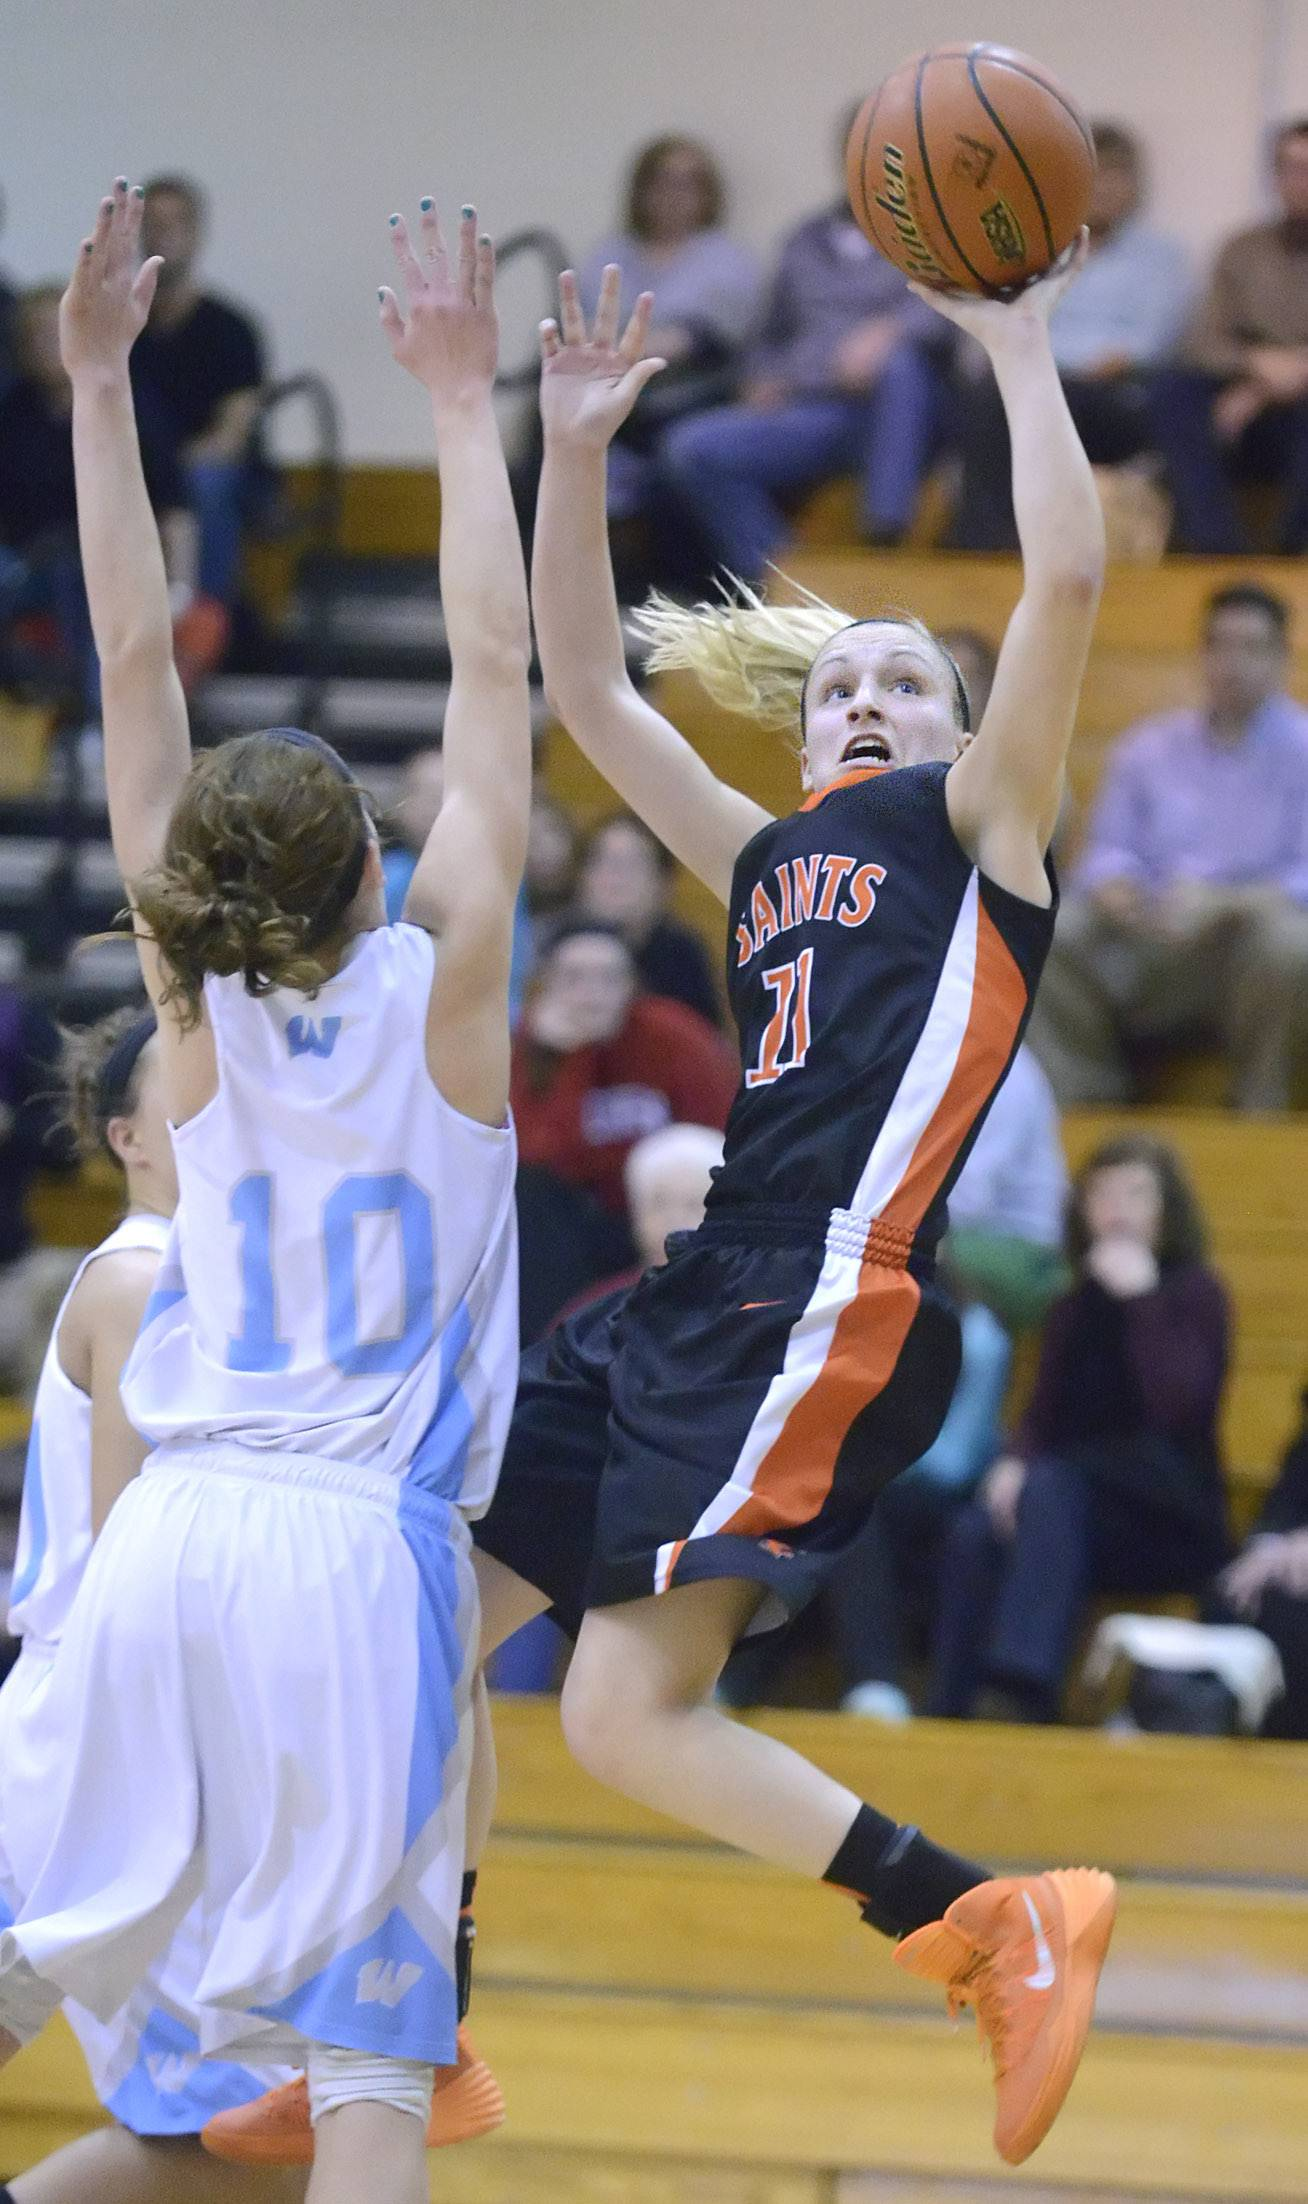 St. Charles East's Katelyn Claussner shoots over a block by Willowbrook's Molly Krawczykowski on Tuesday.